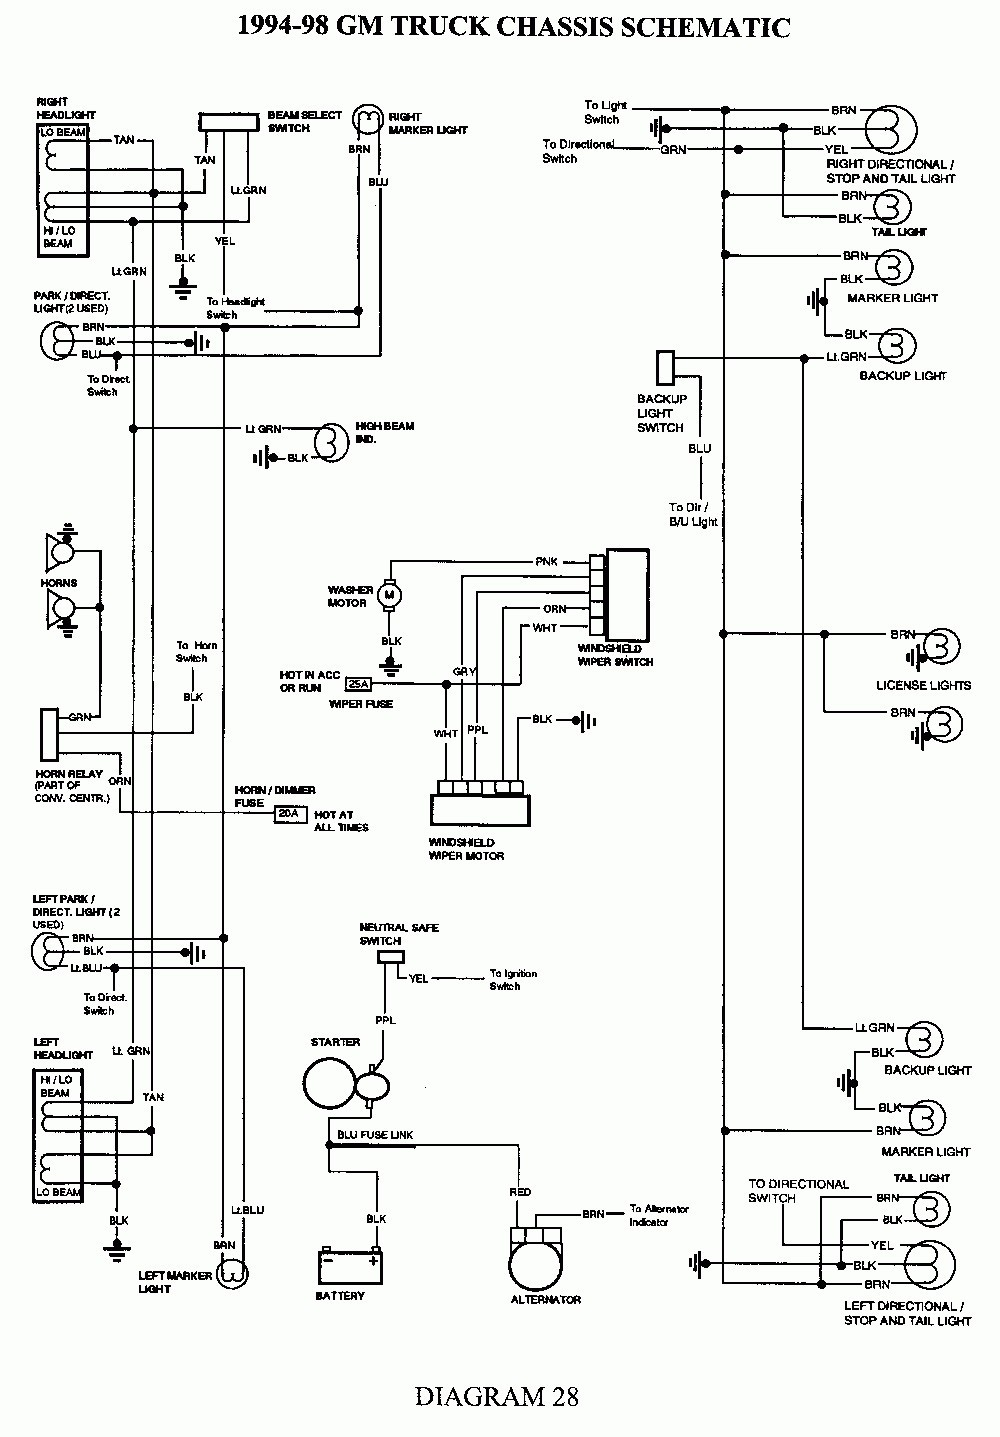 92 Camaro Dash Wiring Diagrams Suzuki Boulevard S50 Wiring Diagram Begeboy Wiring Diagram Source